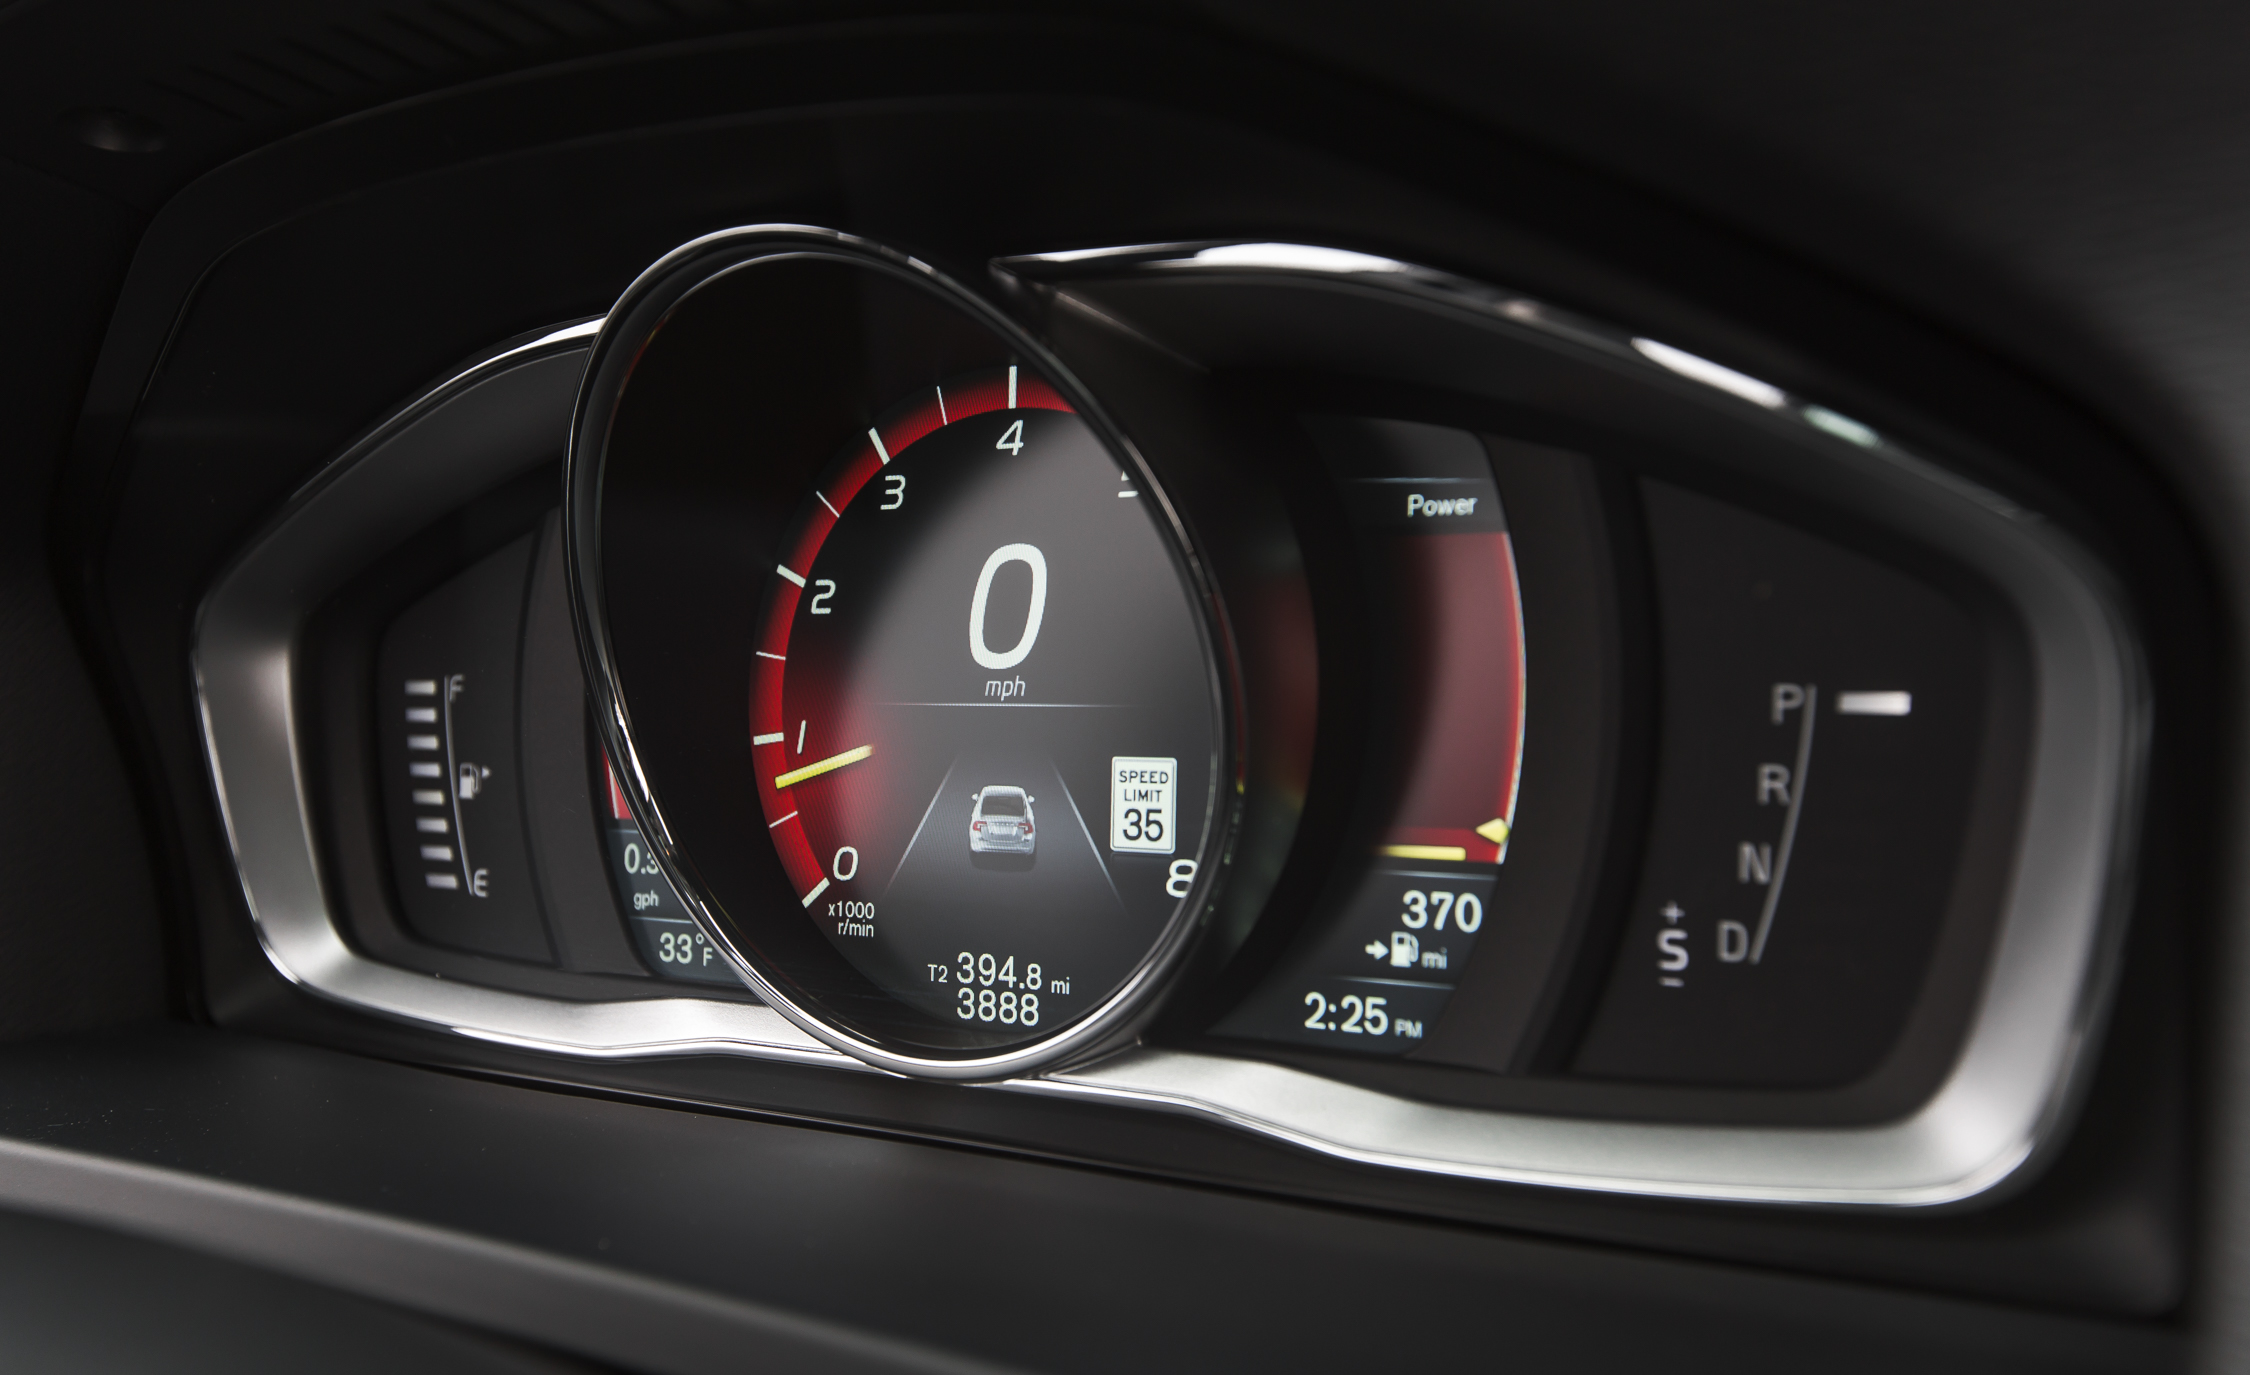 2016 Volvo S60 Cross Country Interior Speedometer (Photo 20 of 21)